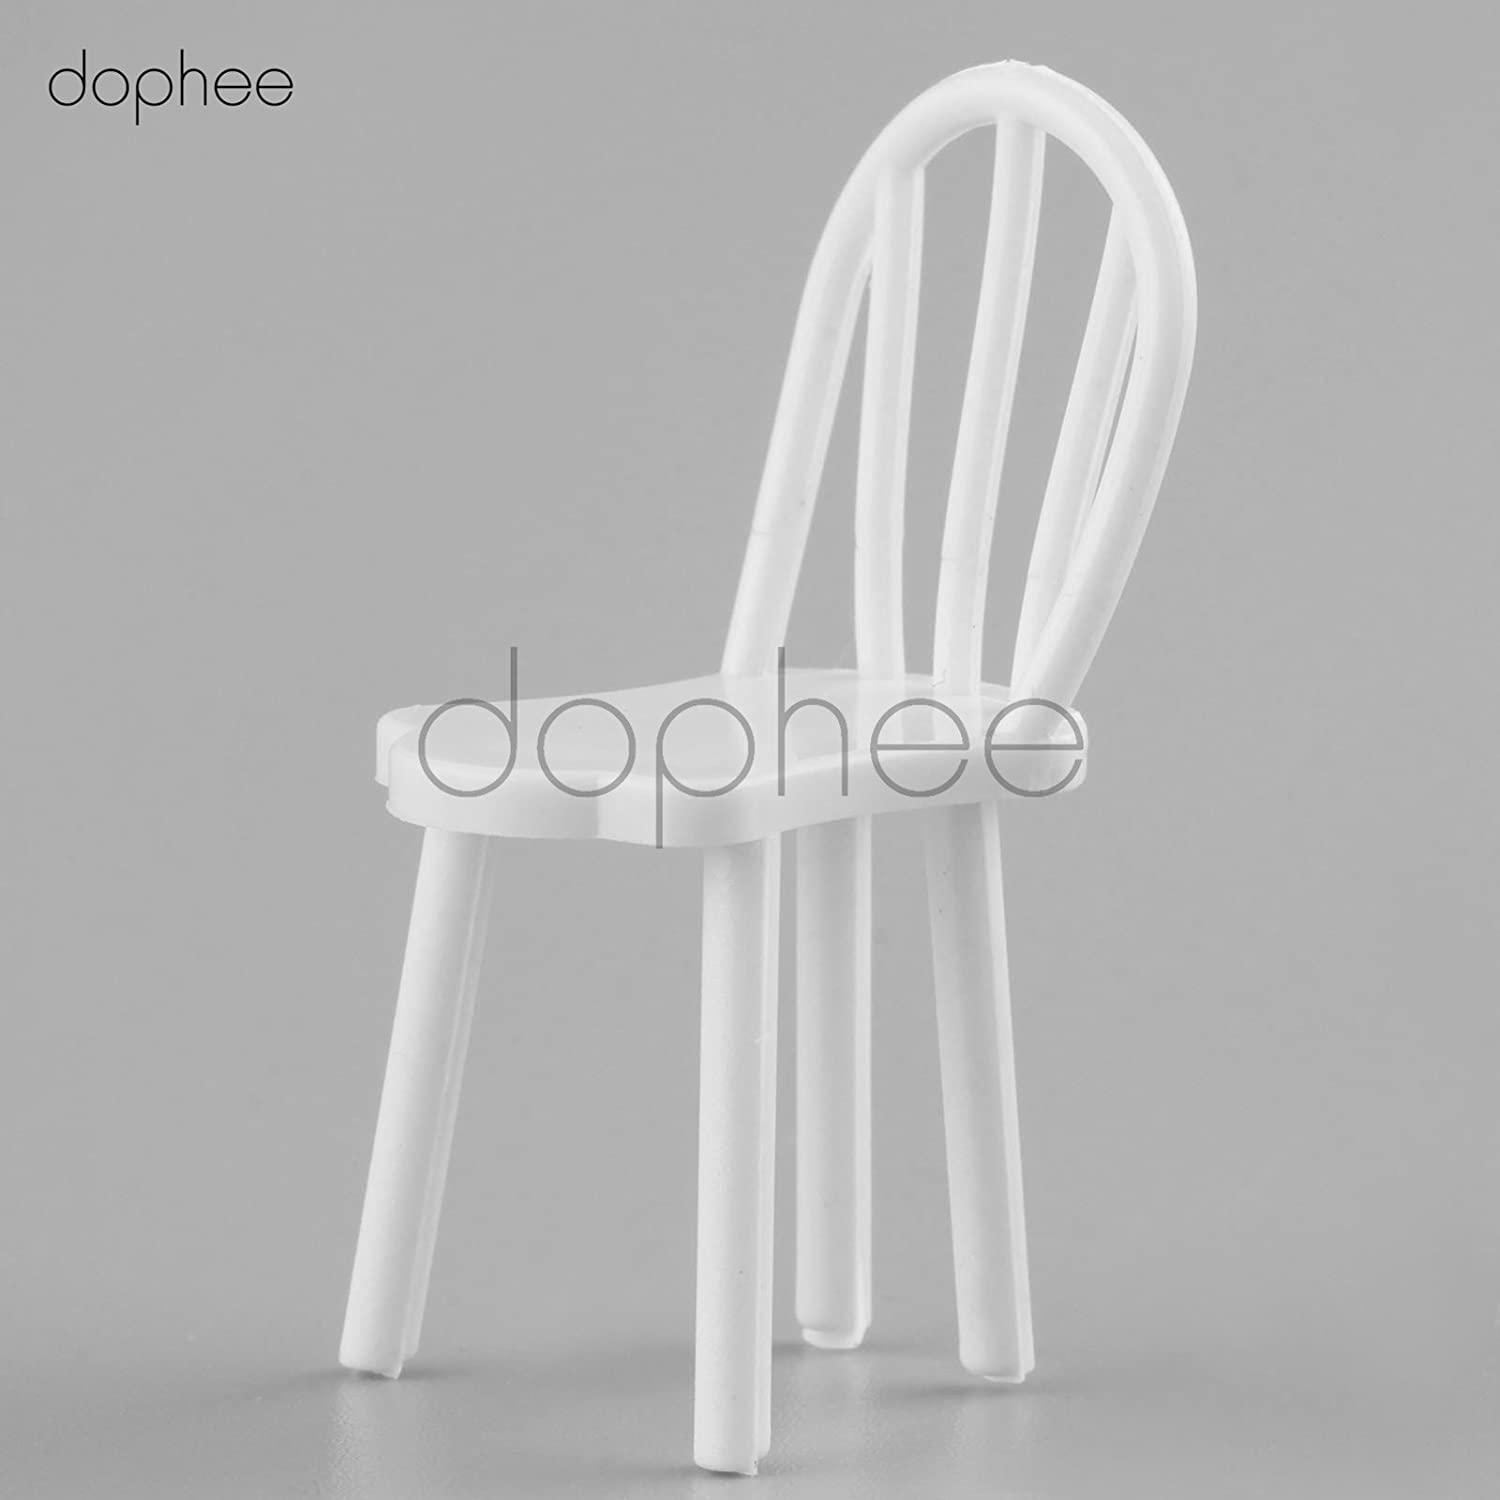 10Pcs White Plastic Chair Model Gift 1:25 Scale For Your Children Or Home Decor